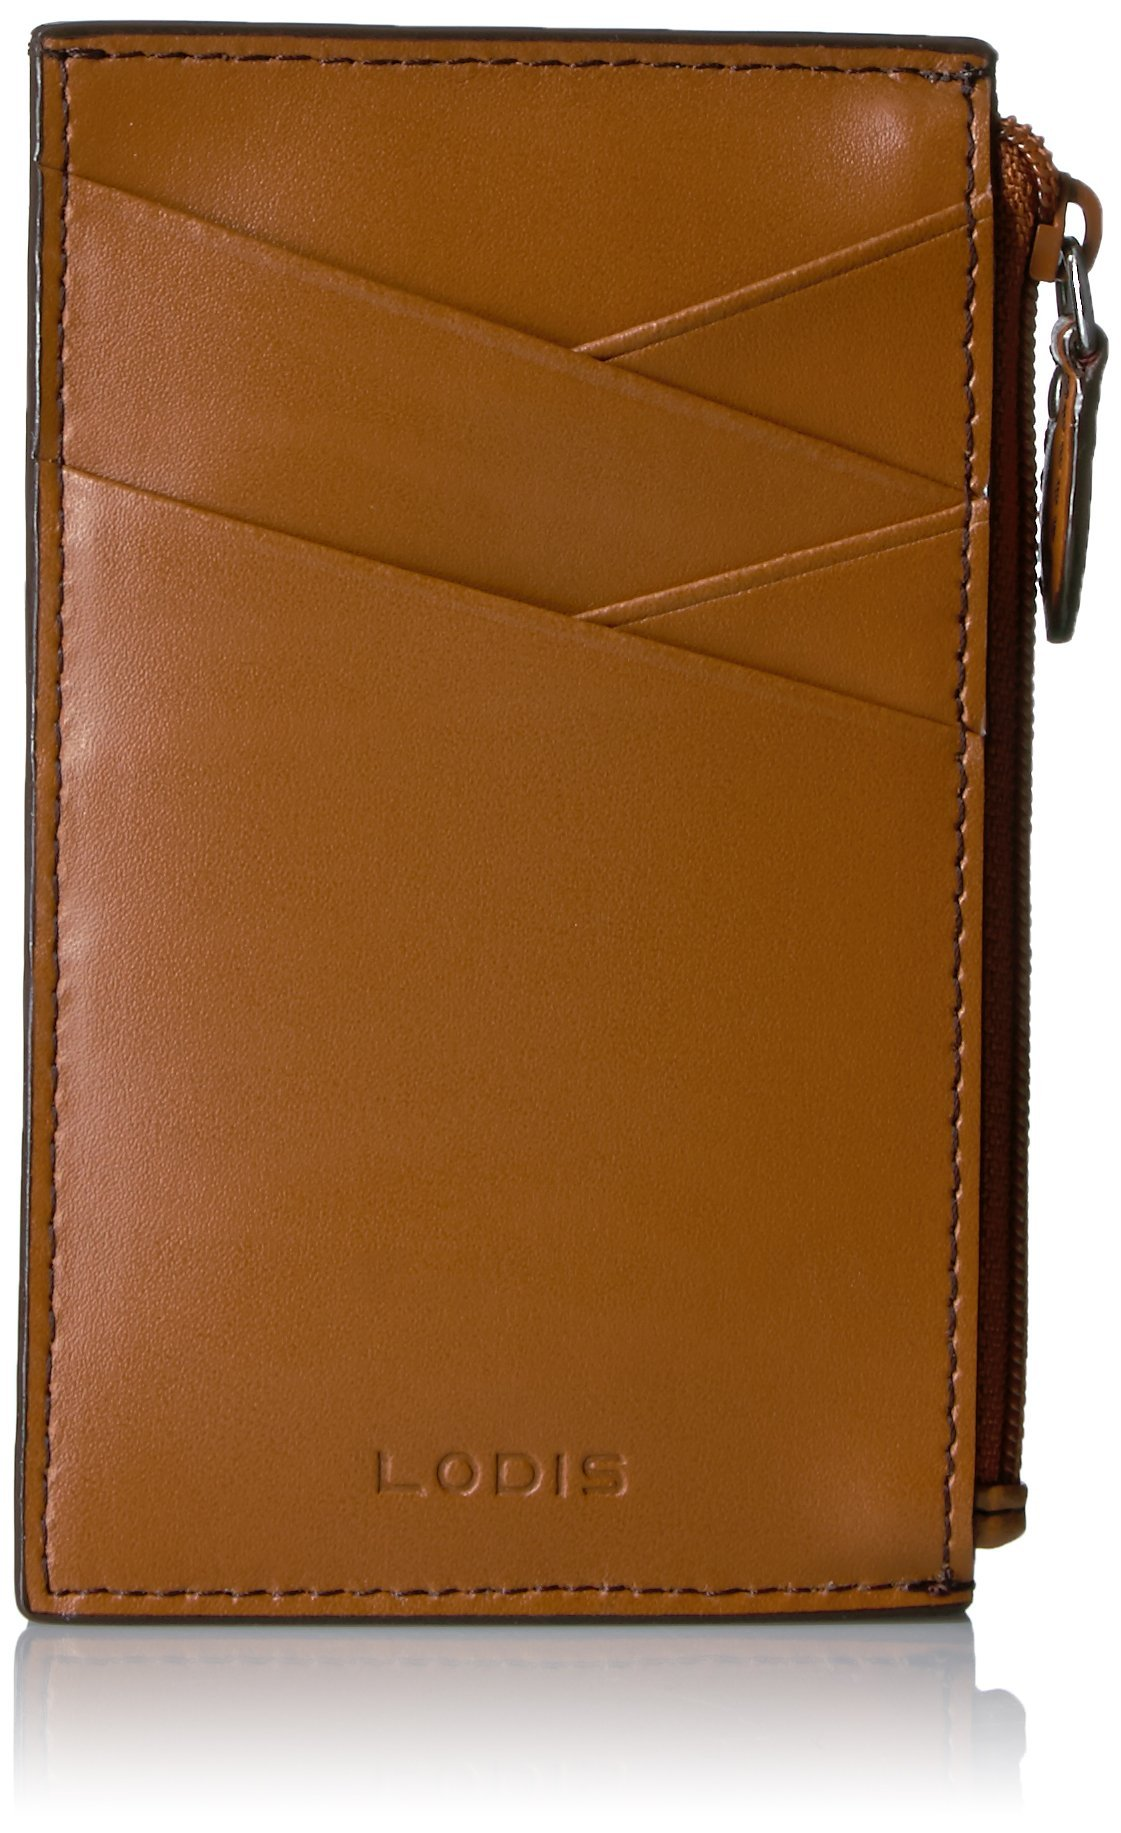 Lodis Women's Audrey Ina Card Case, Toffee, One Size by Lodis